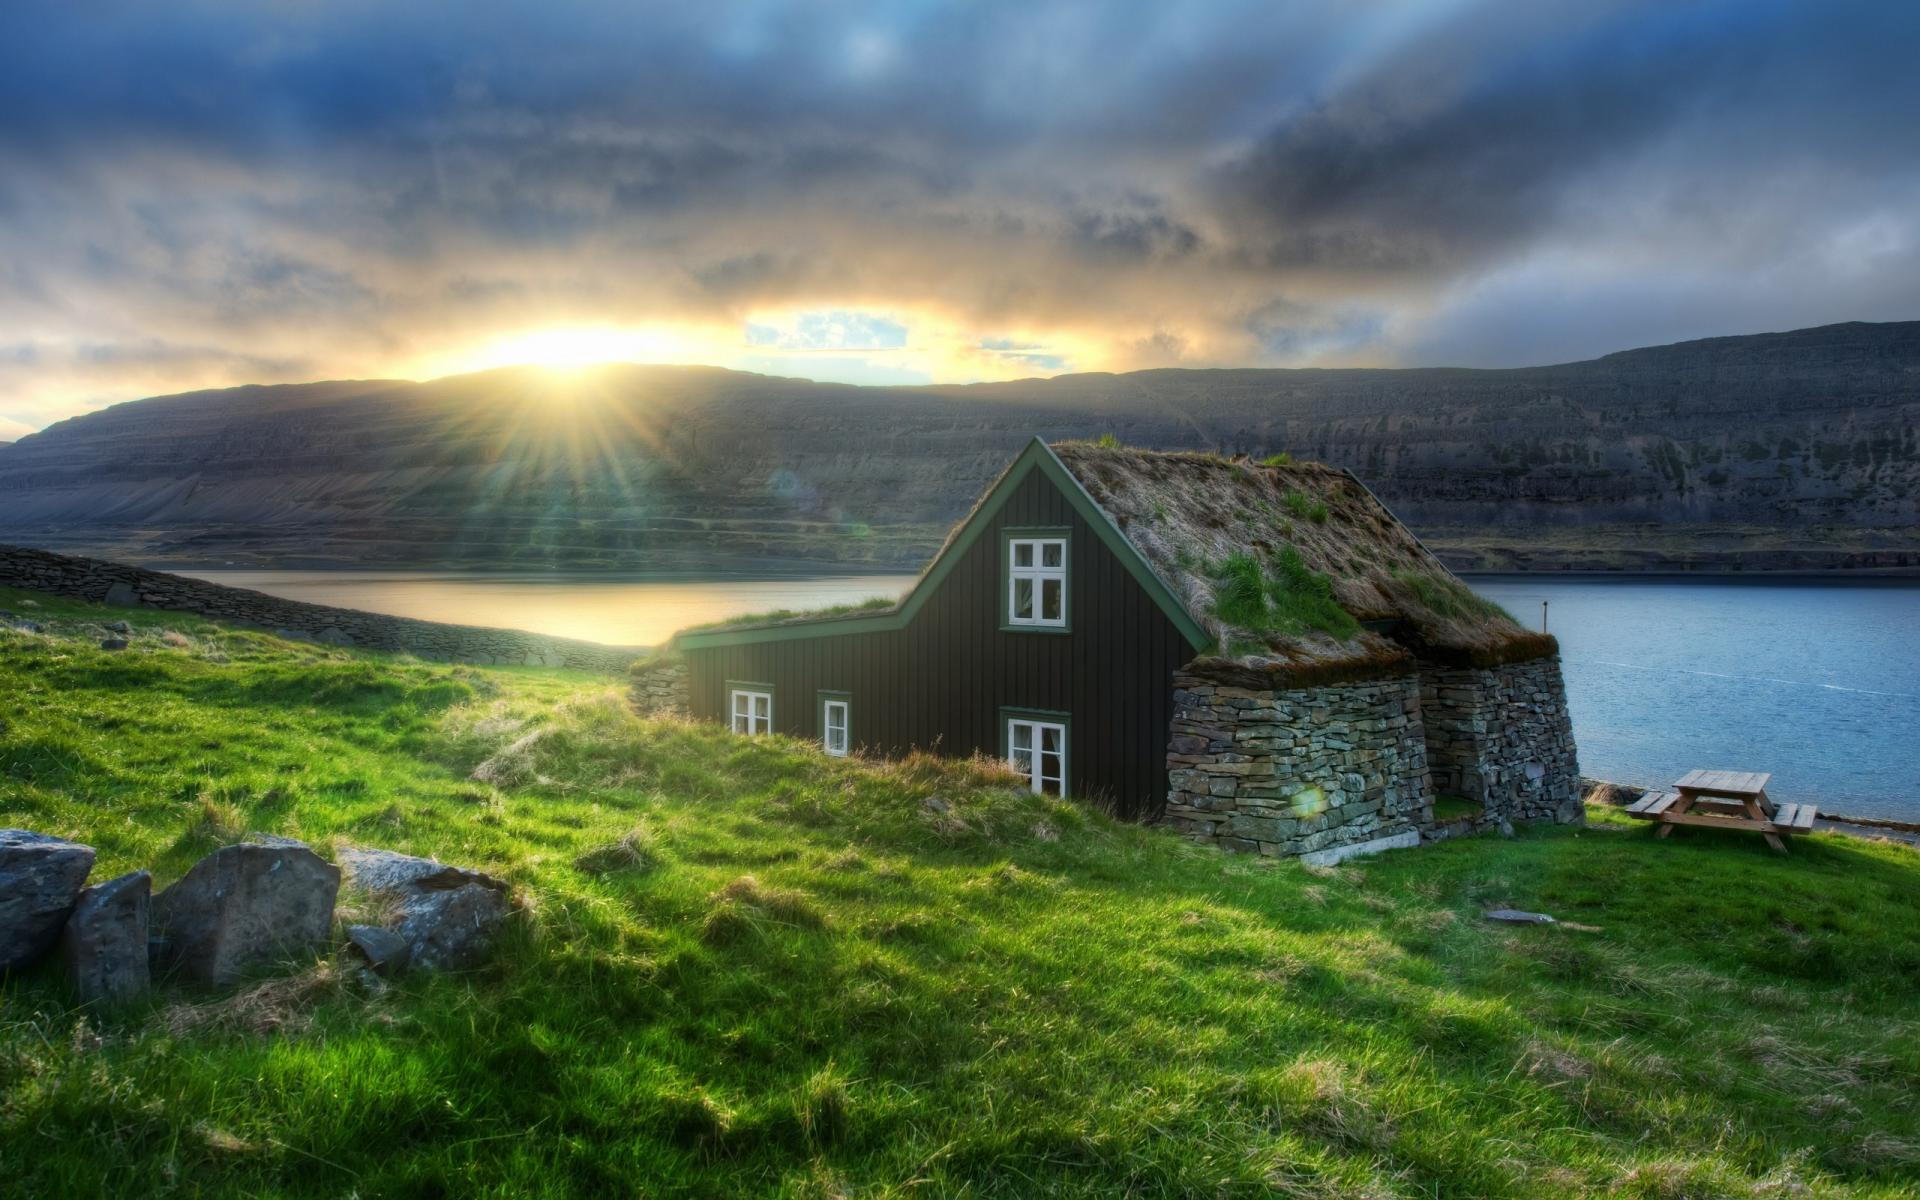 Image via Guide to Iceland